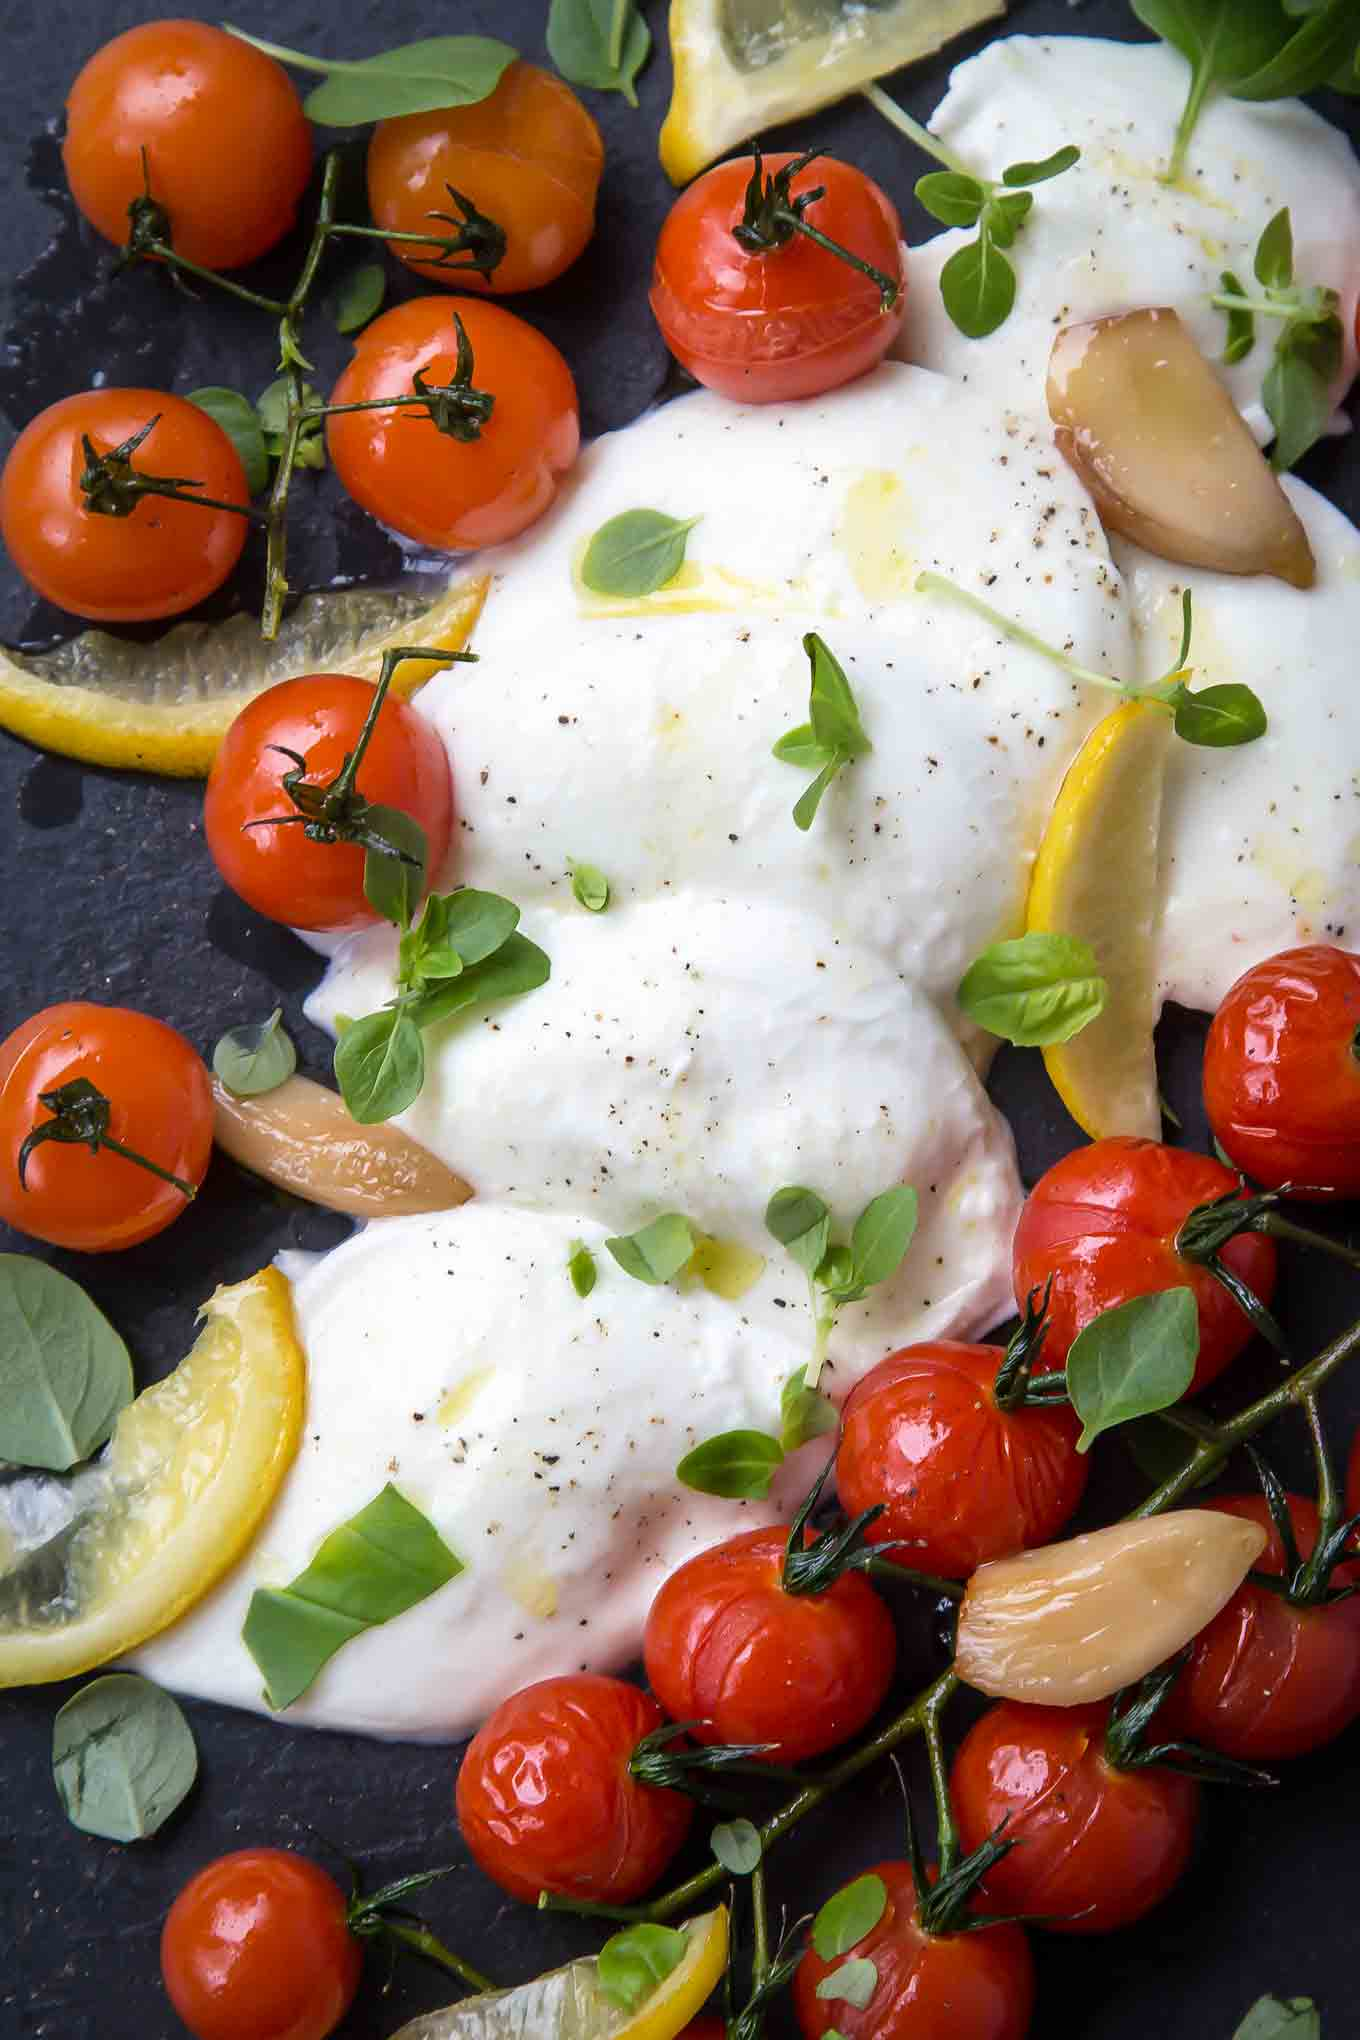 Baked Cherry Tomato, Mozzarella and Basil Salad with Confit Garlic is an alternative, elegant, winter take on the traditional caprese.